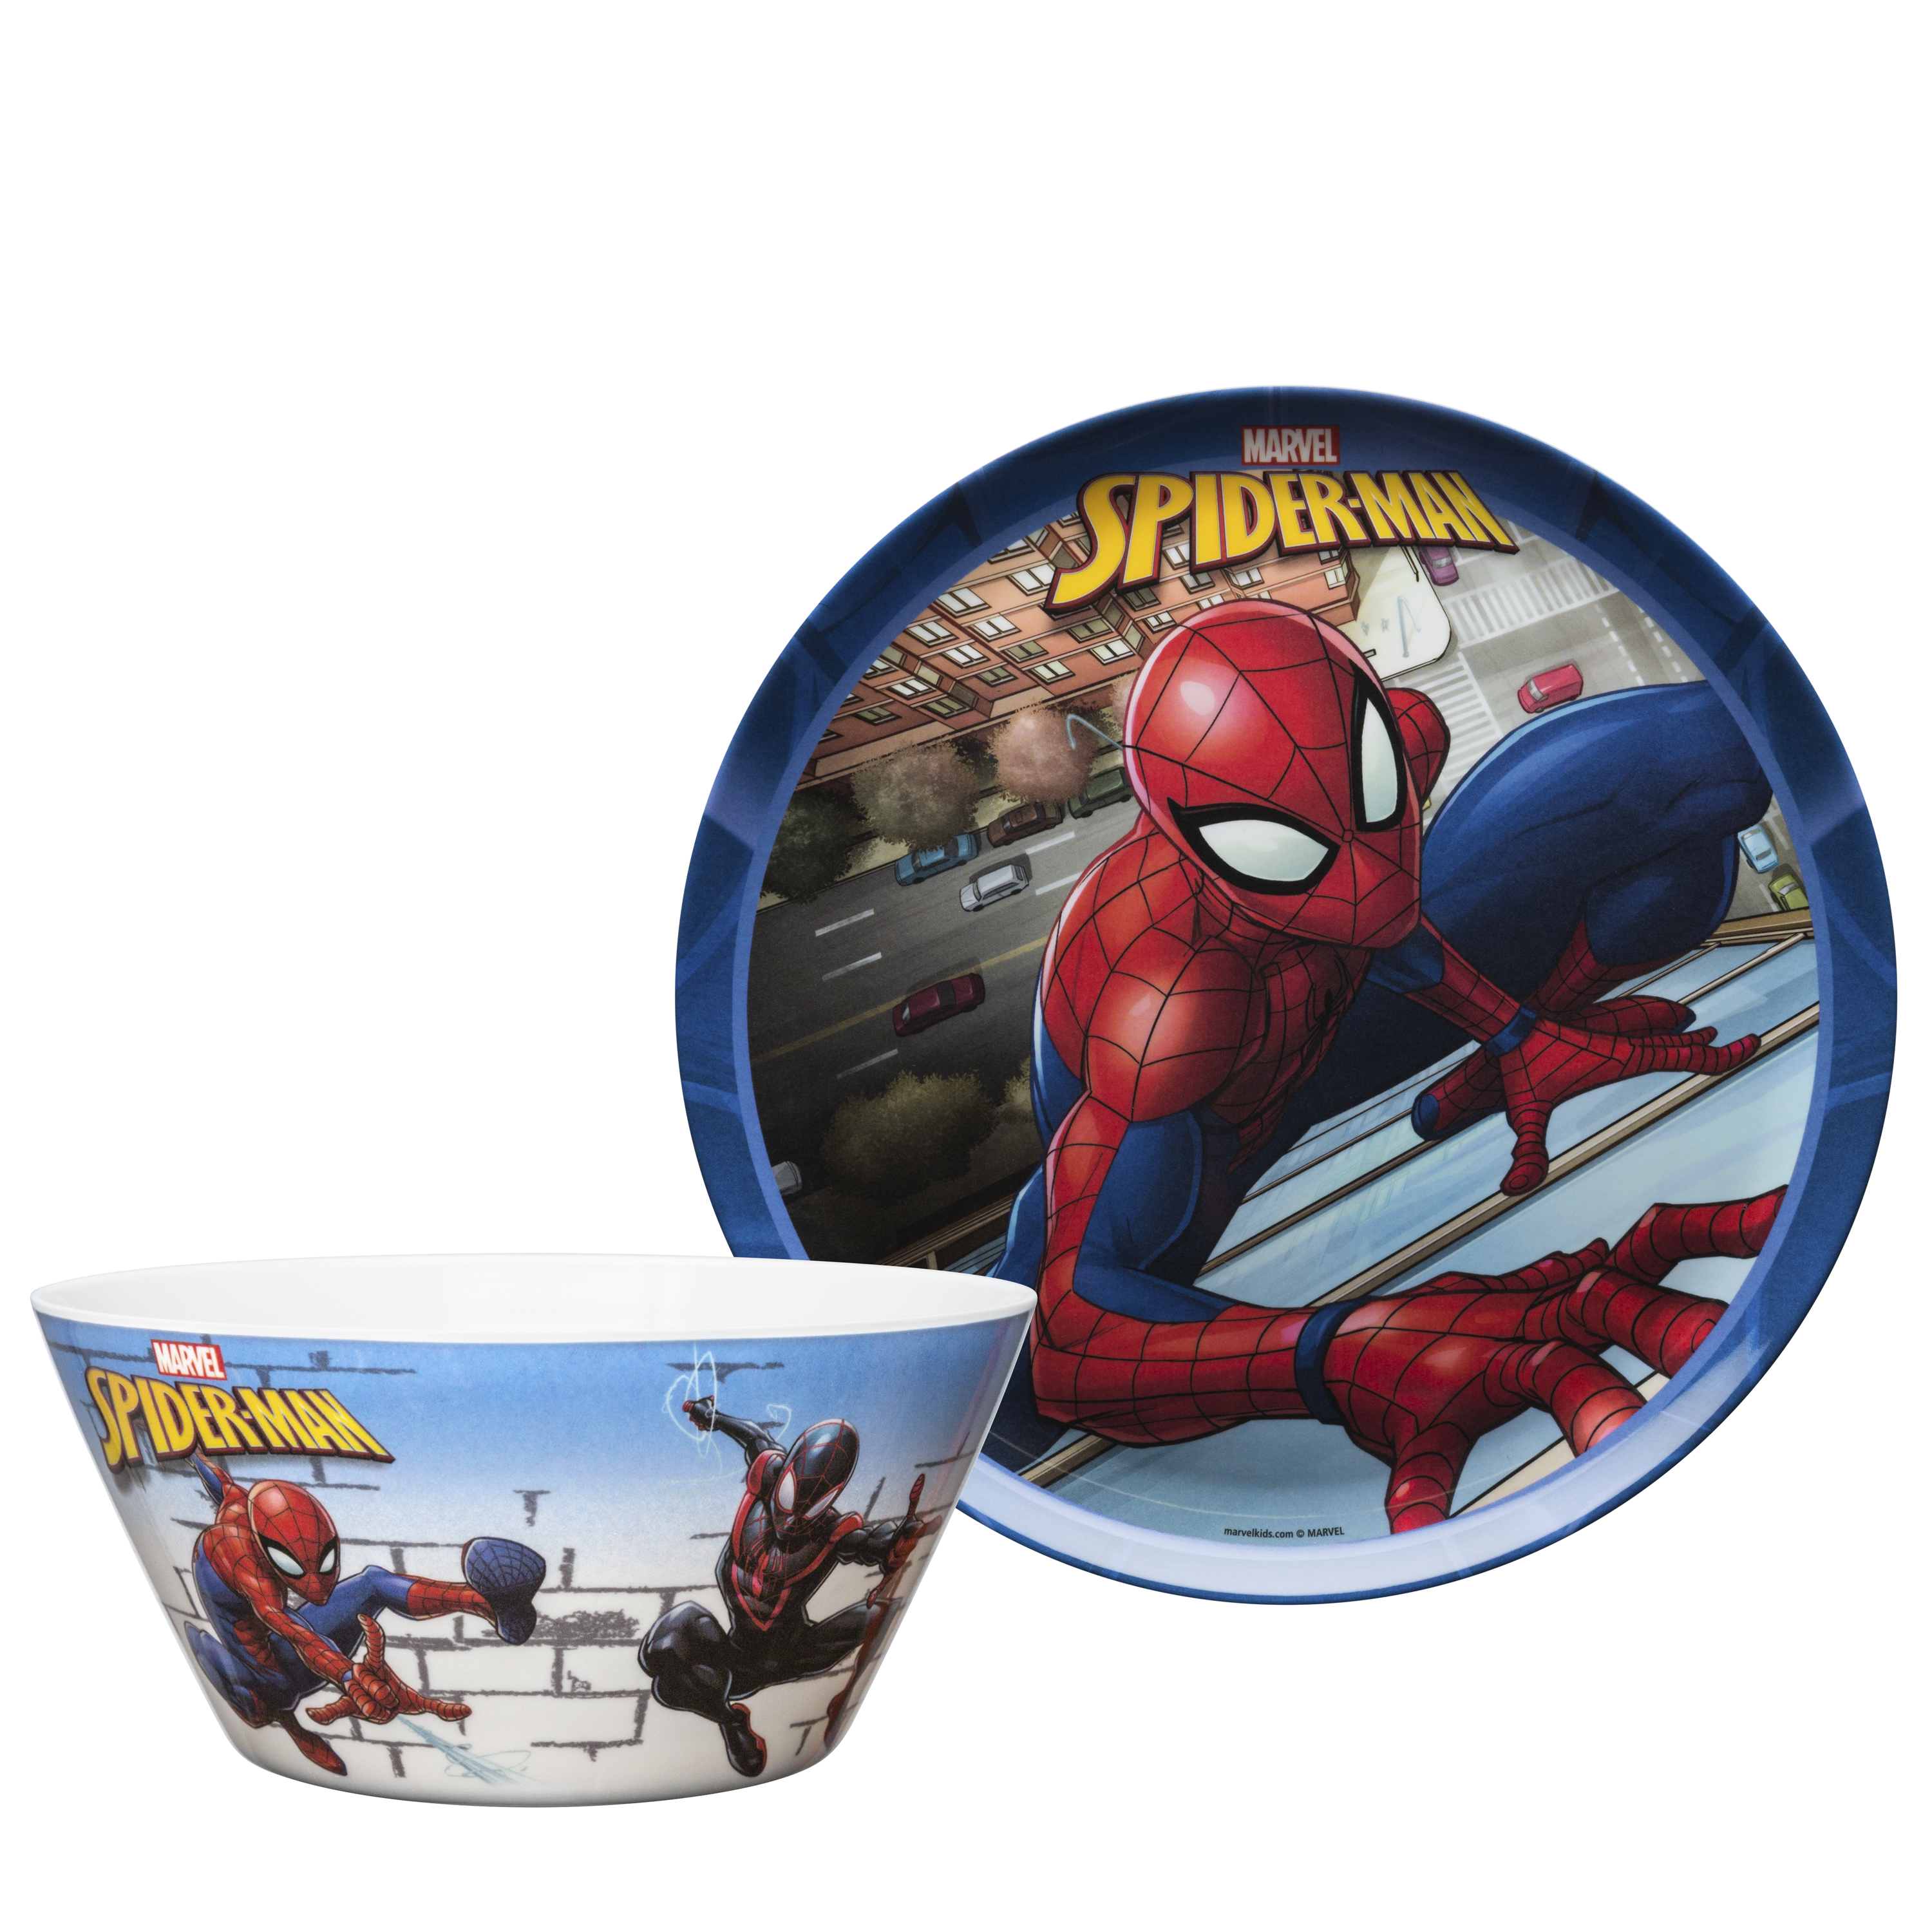 Marvel Comics Dinnerware Set, Spider-Man, 2-piece set slideshow image 2